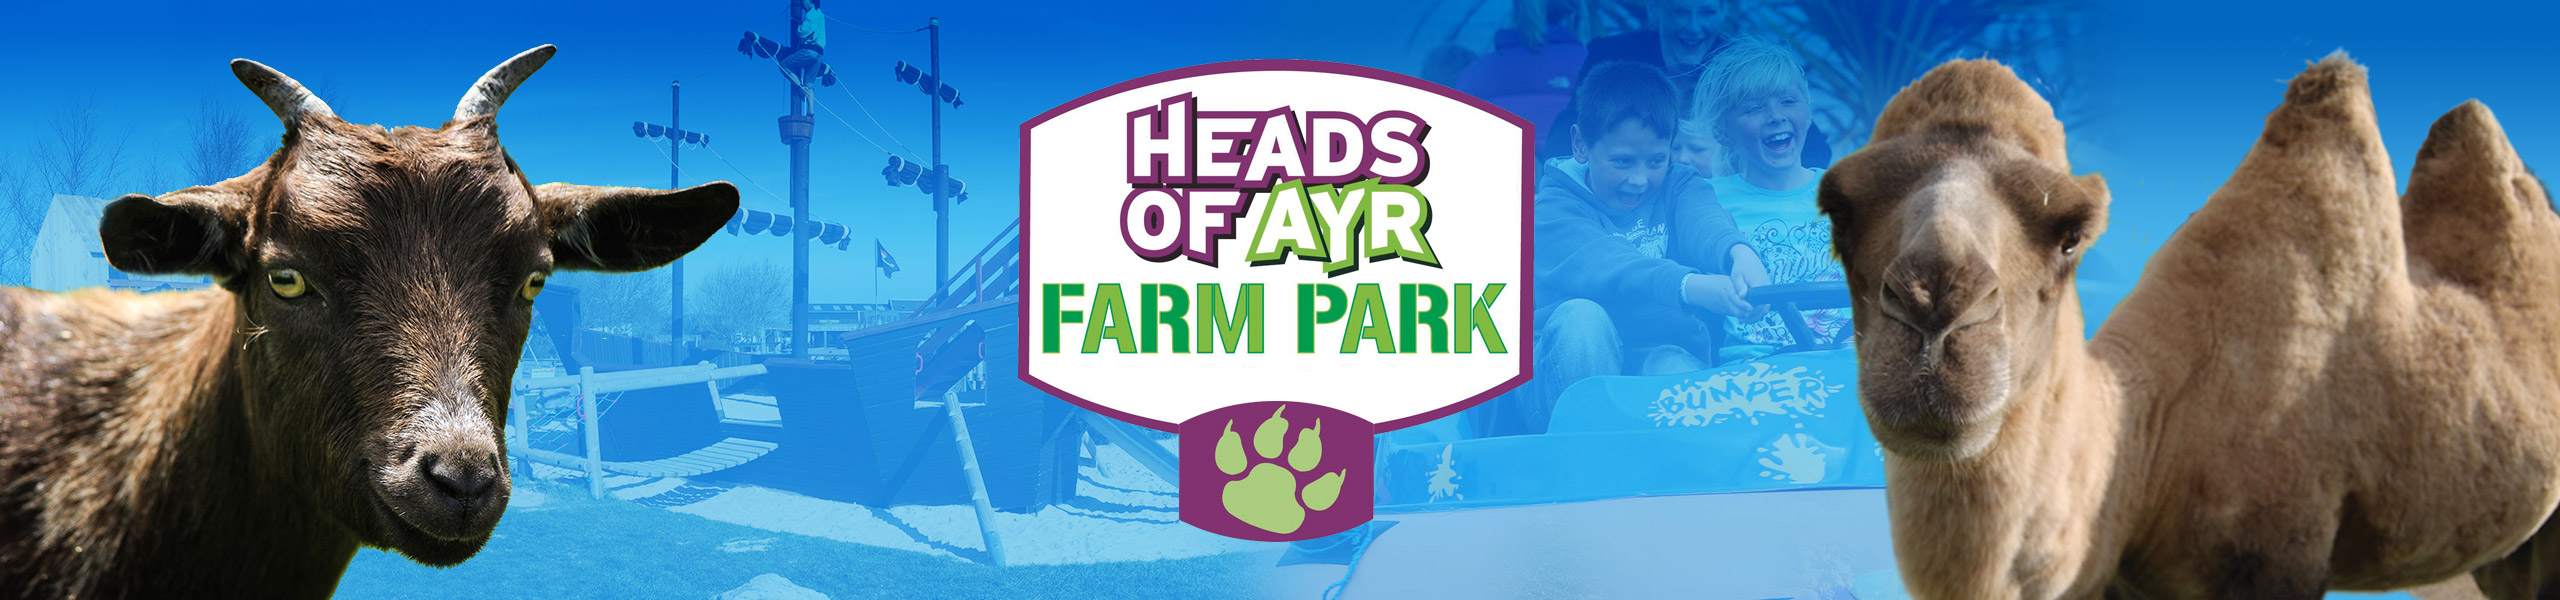 Heads of Ayr Farm Park logo with alpaca and pygmy goat in foreground